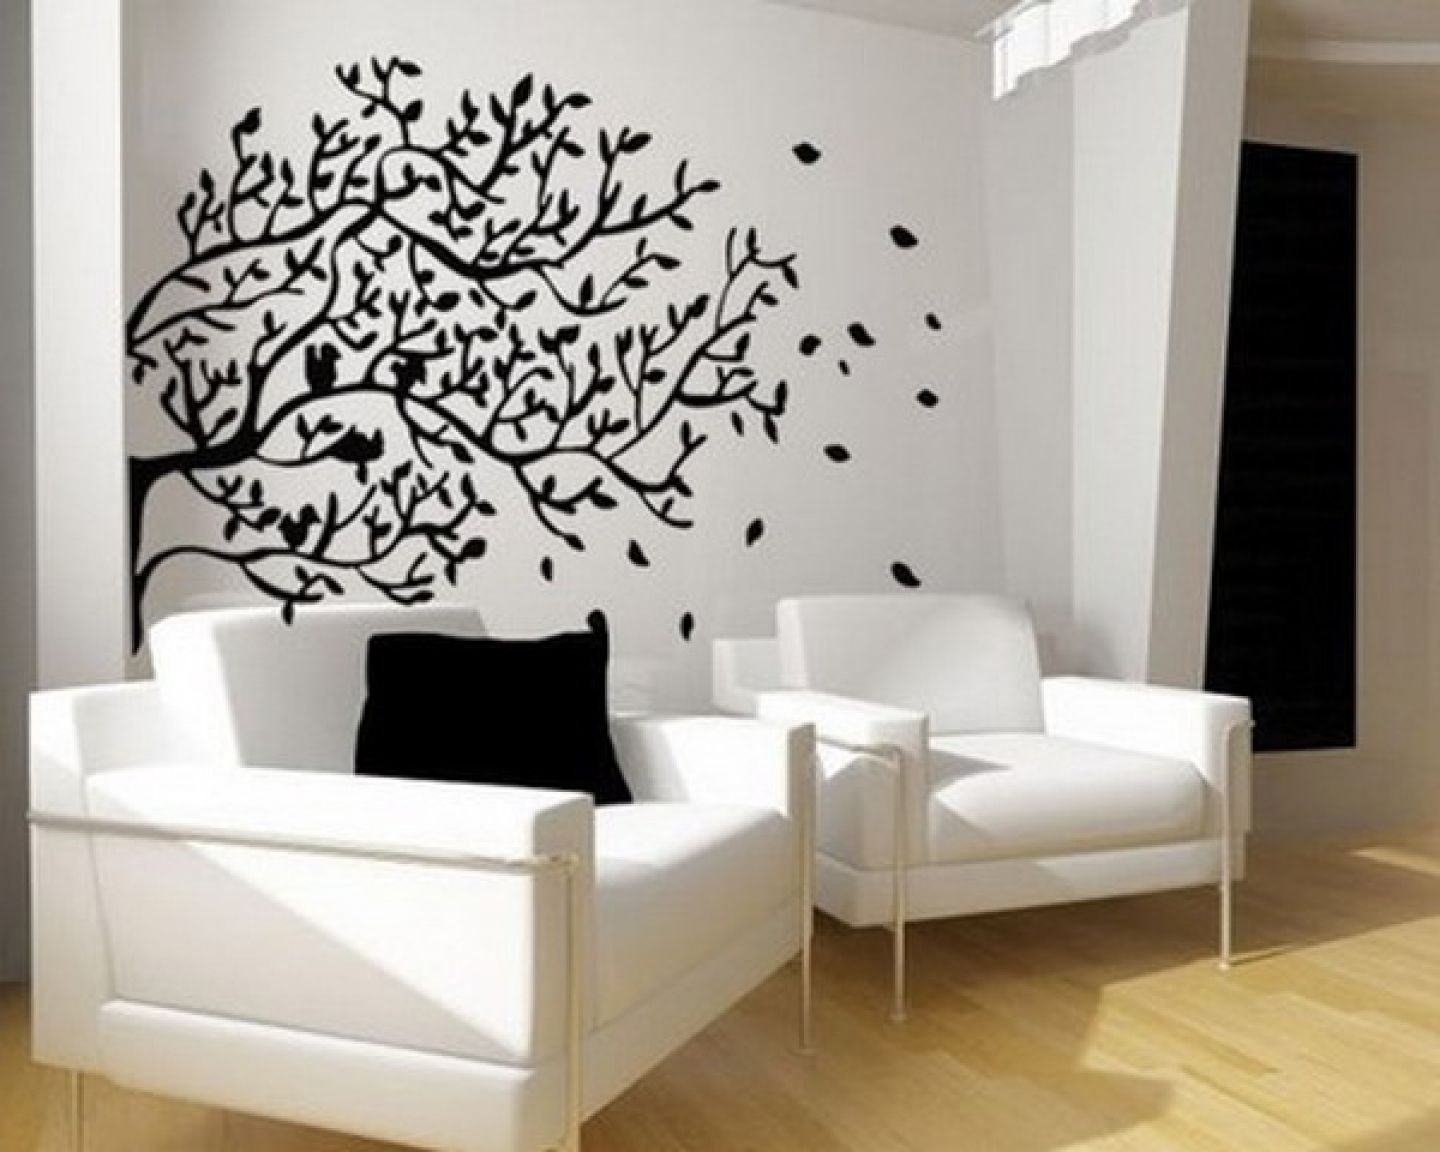 Bedroom Wall Art Trees Luxury Living Room Tree Wall Murals Sticker Decorations